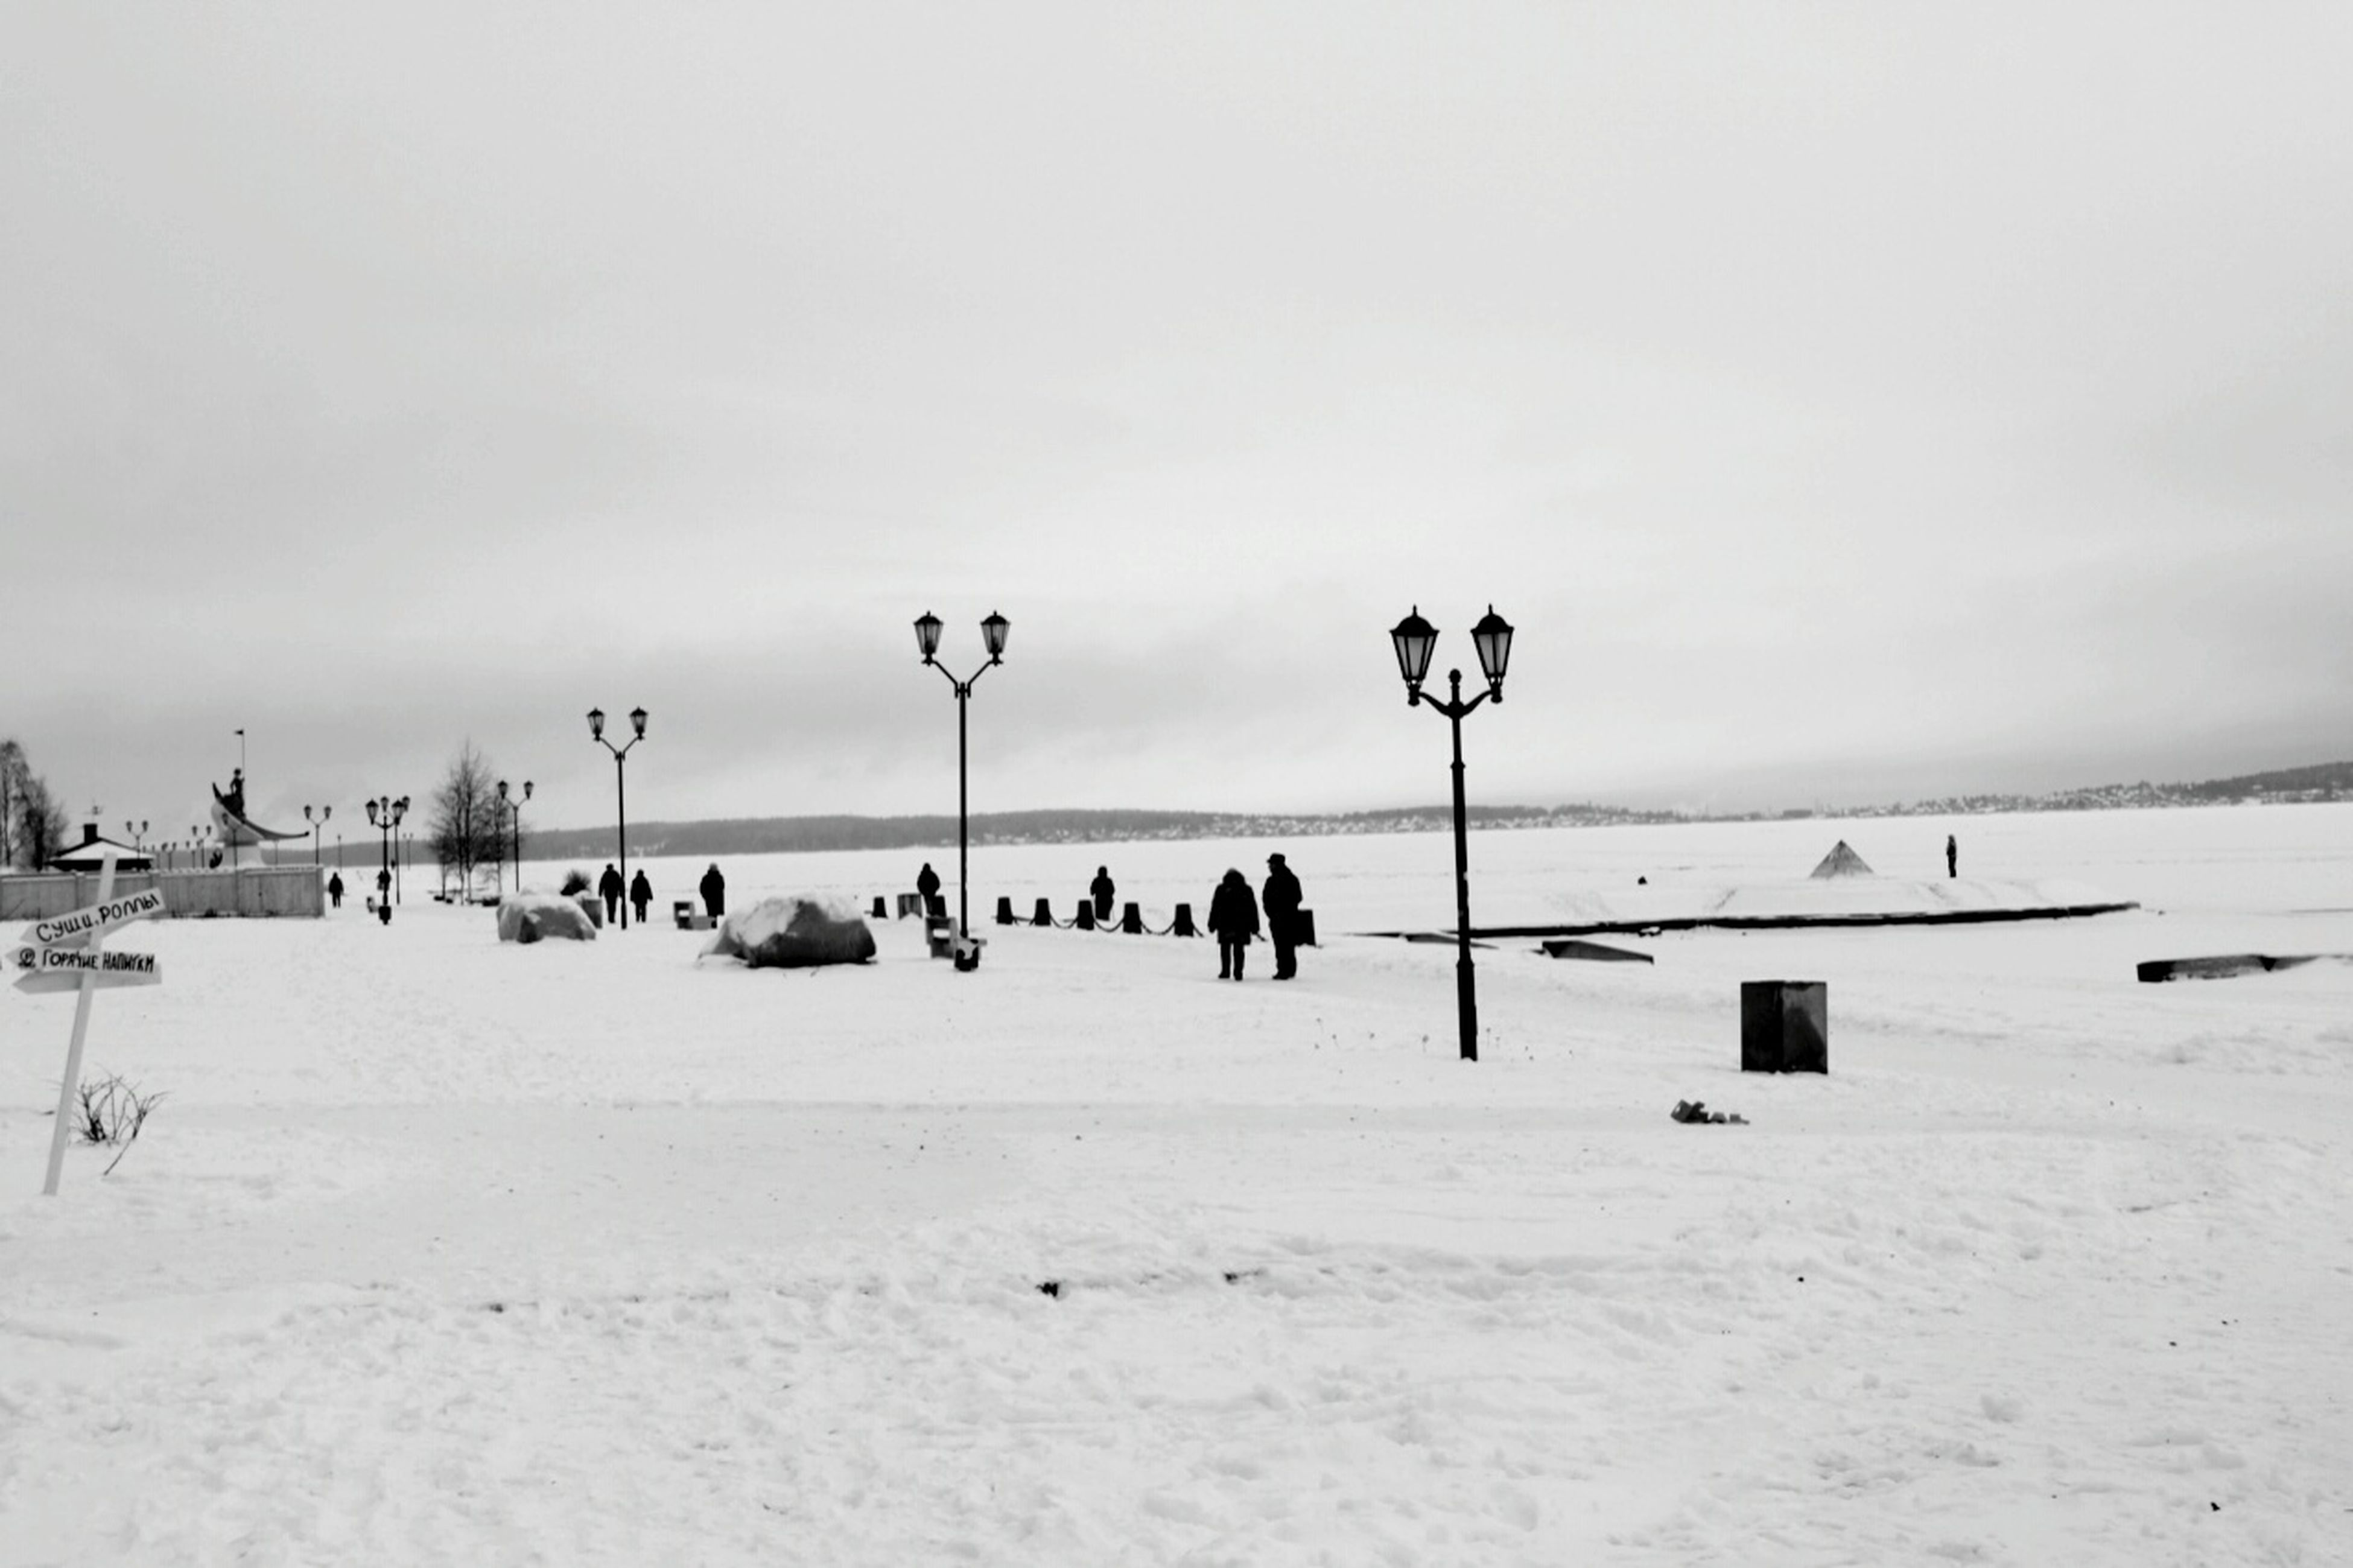 winter, snow, cold temperature, beach, sky, weather, large group of people, tranquil scene, tranquility, sea, nature, scenics, beauty in nature, men, horizon over water, copy space, season, sand, leisure activity